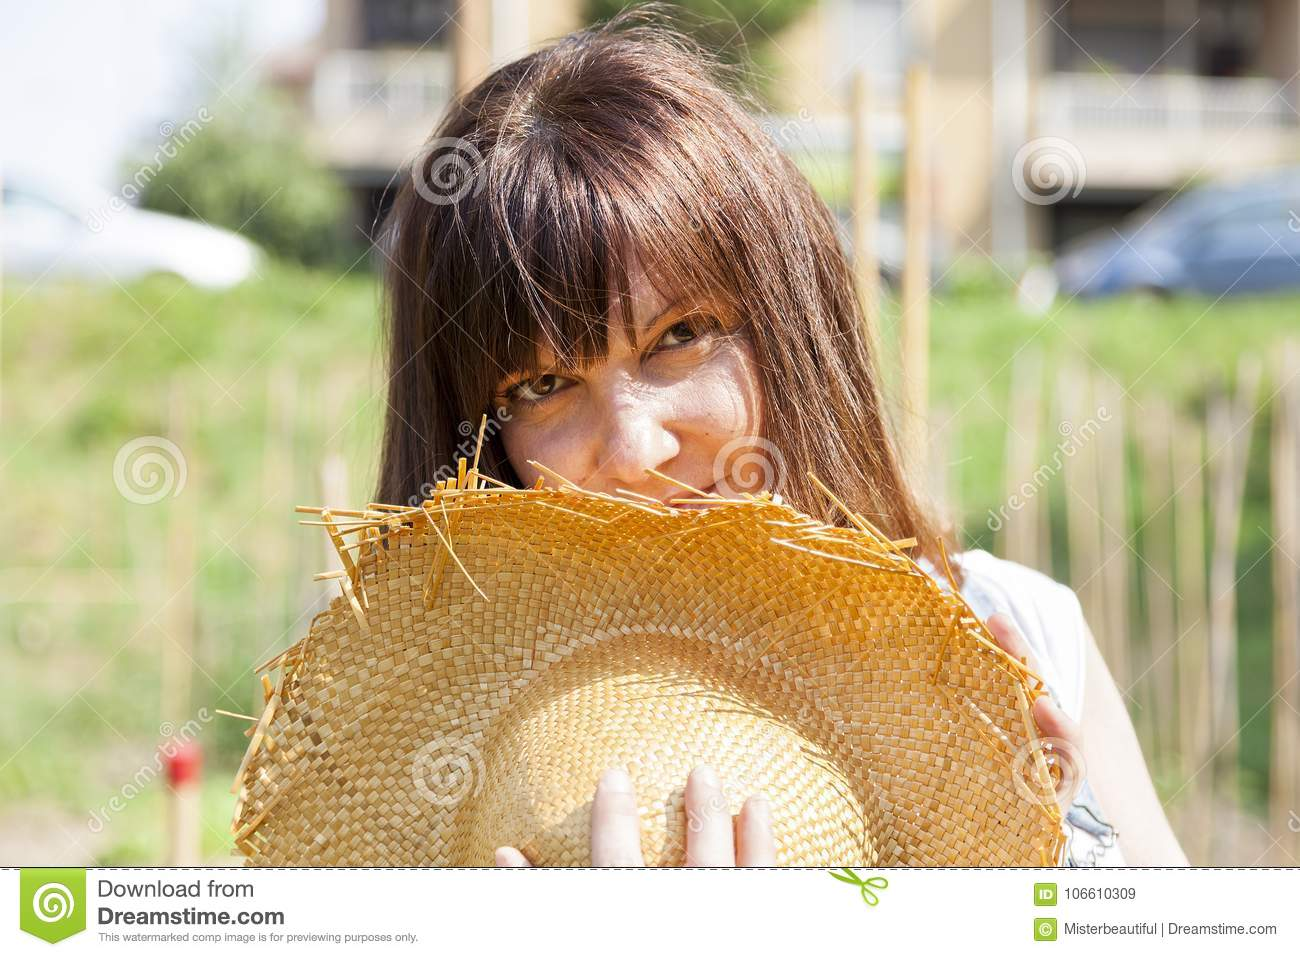 Woman smiling hidden behind a straw hat